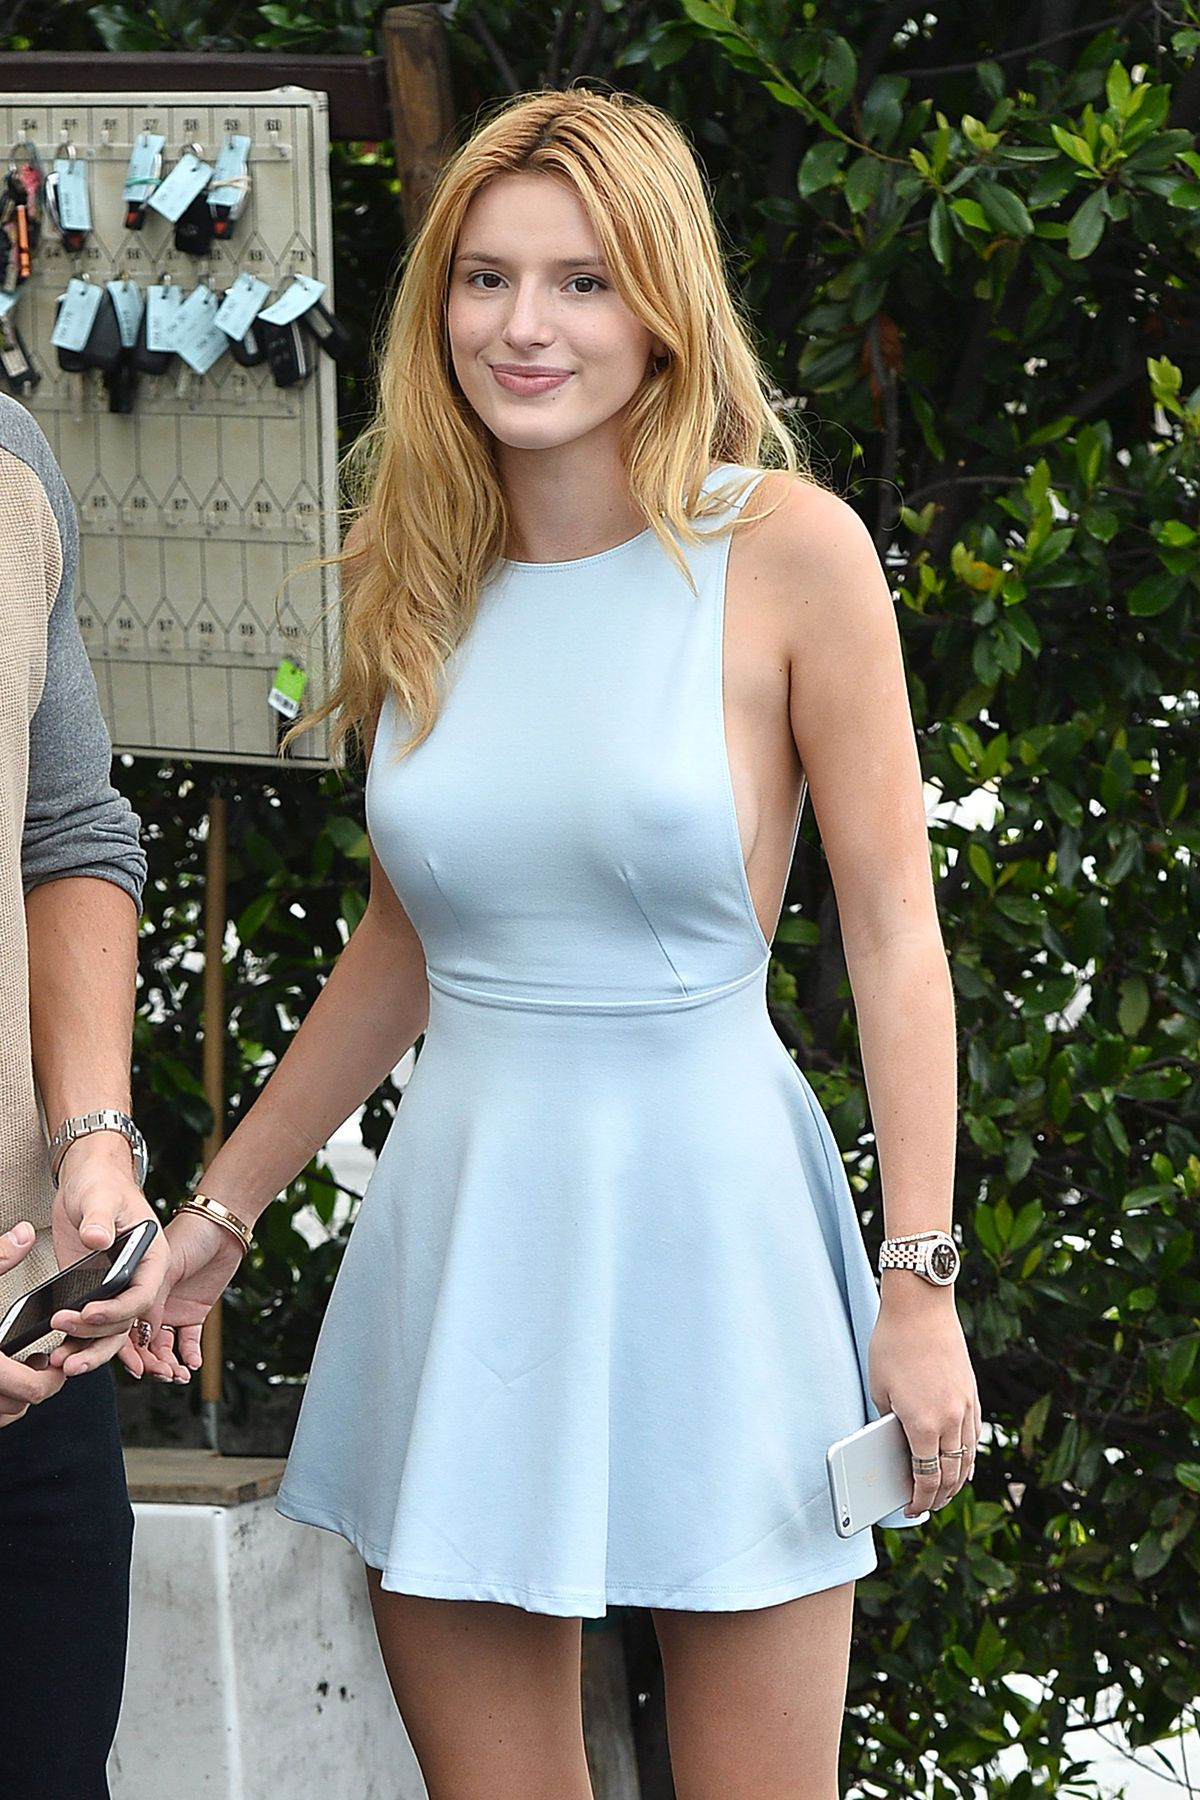 Bella Thorne Braless 44 TheFappening.nu